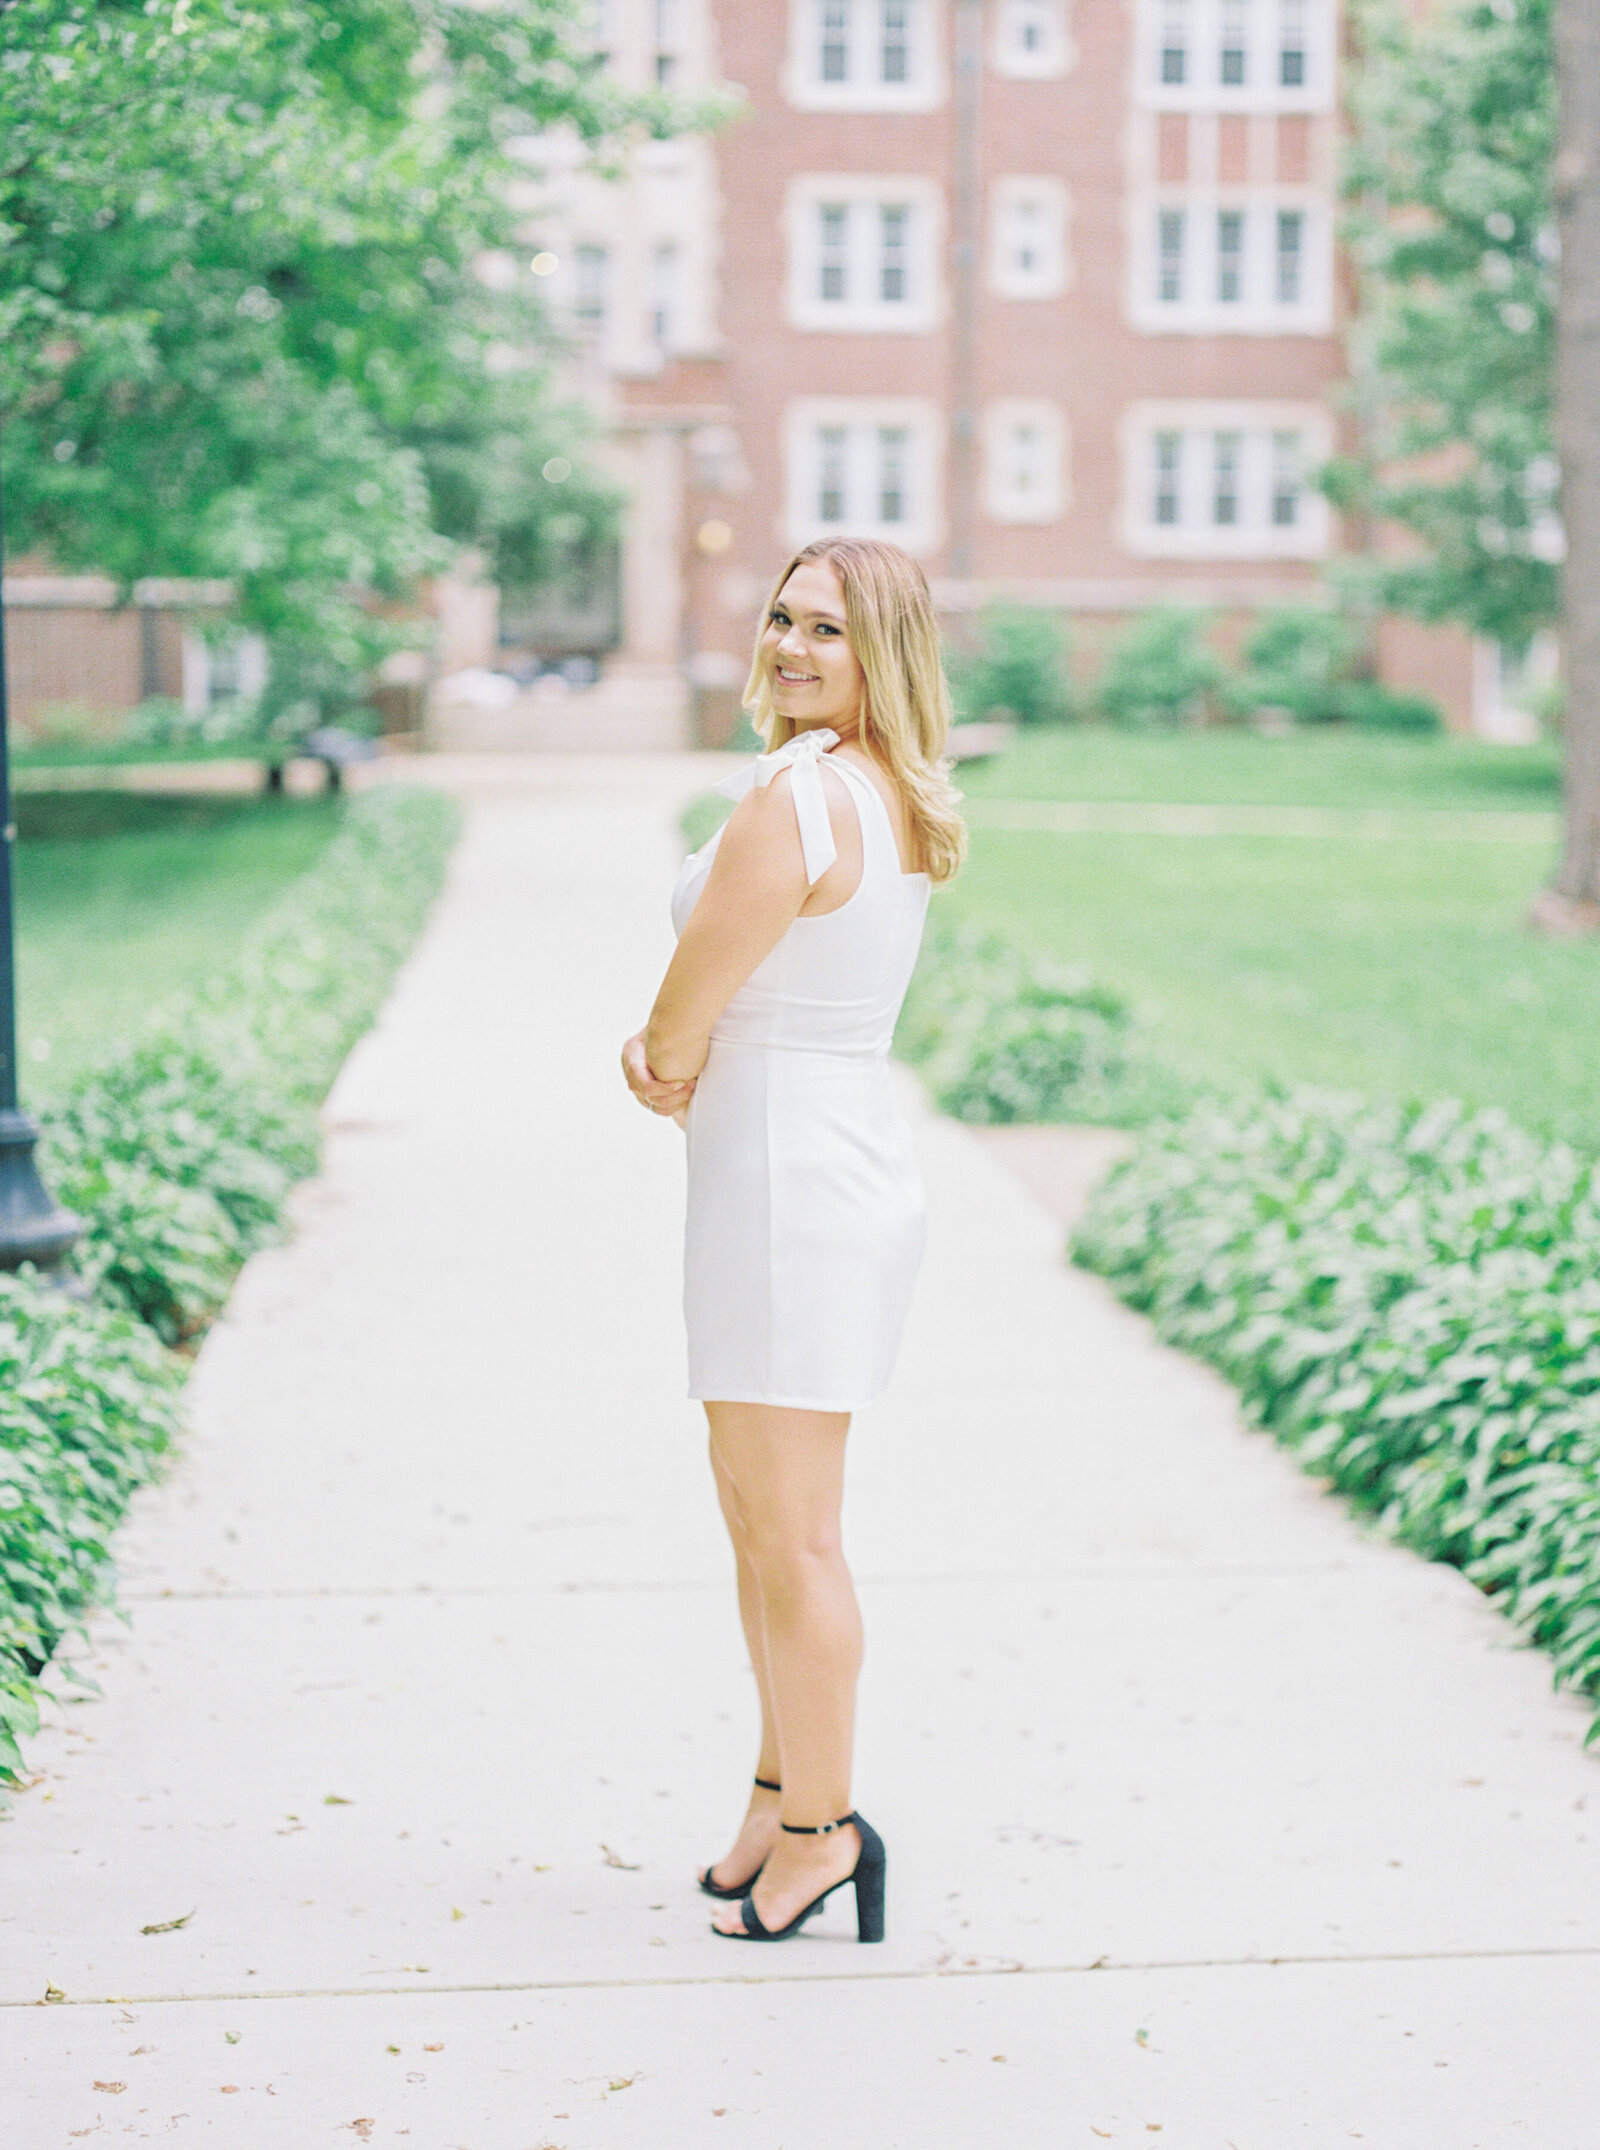 skyler_senior_session_20_film-37